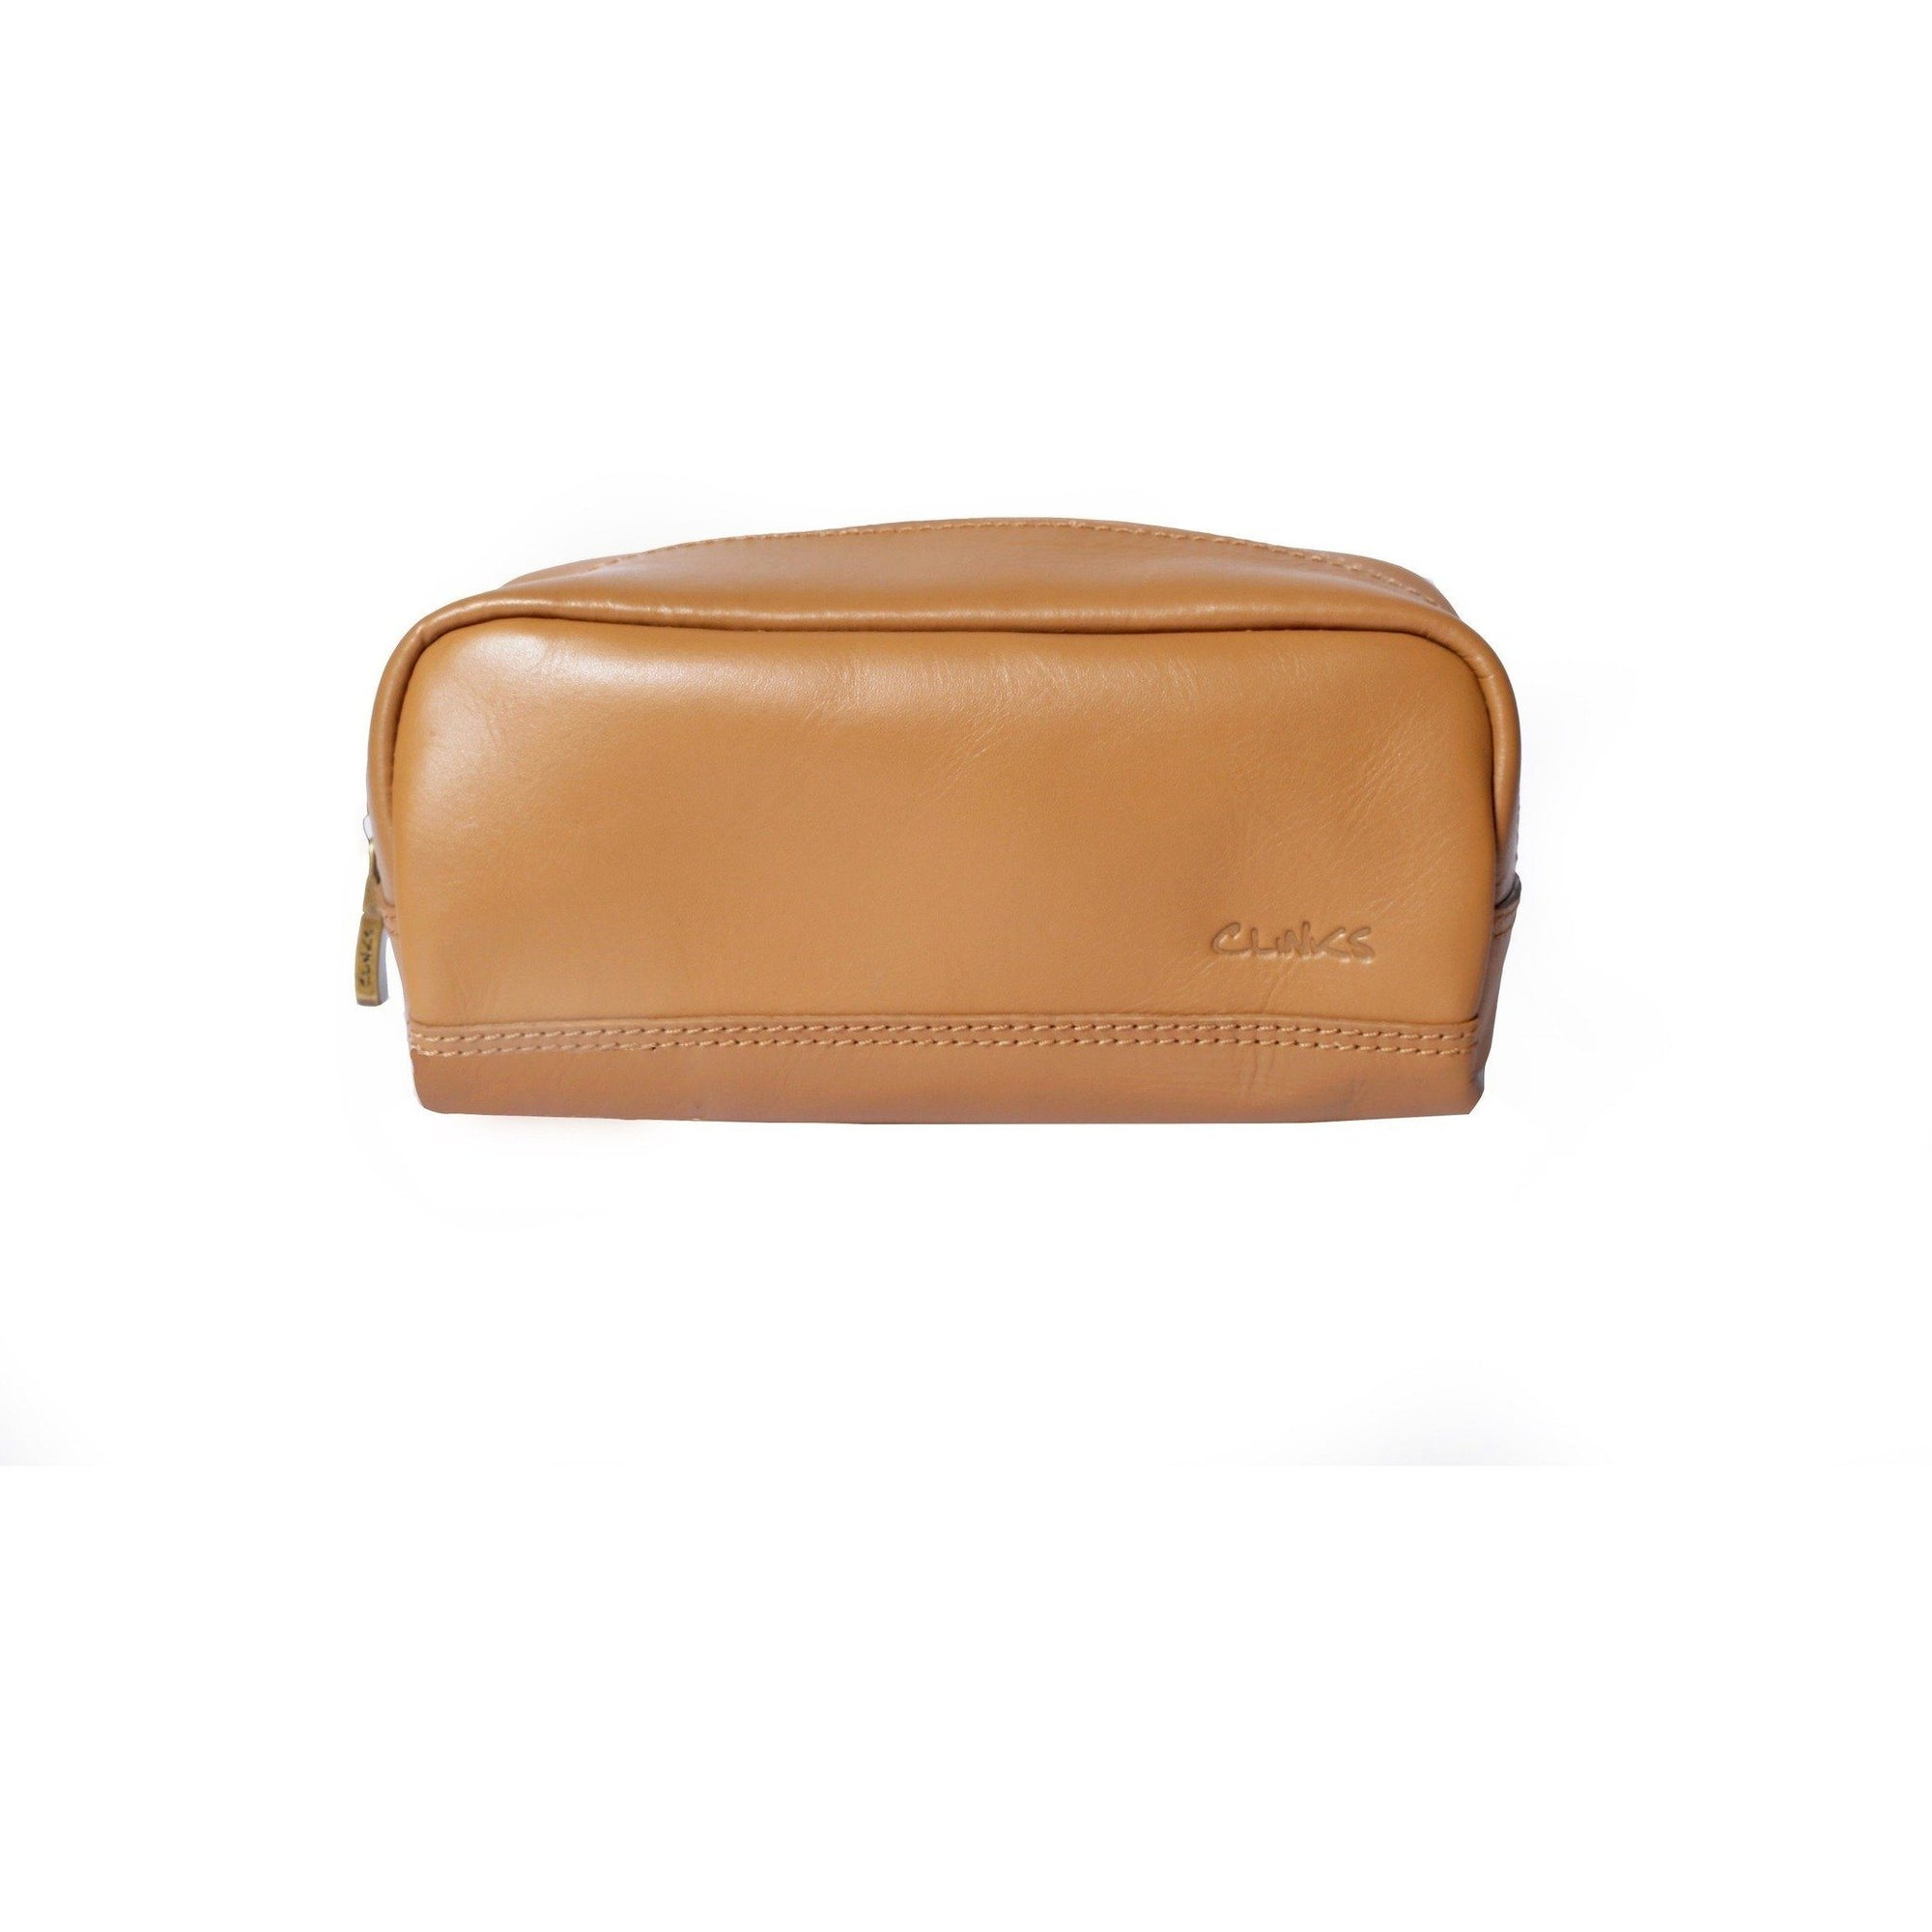 Small Leather Toiletry Bag in Tan, Leather Accessories, Cuffed.com.au, LB1010, $29.00